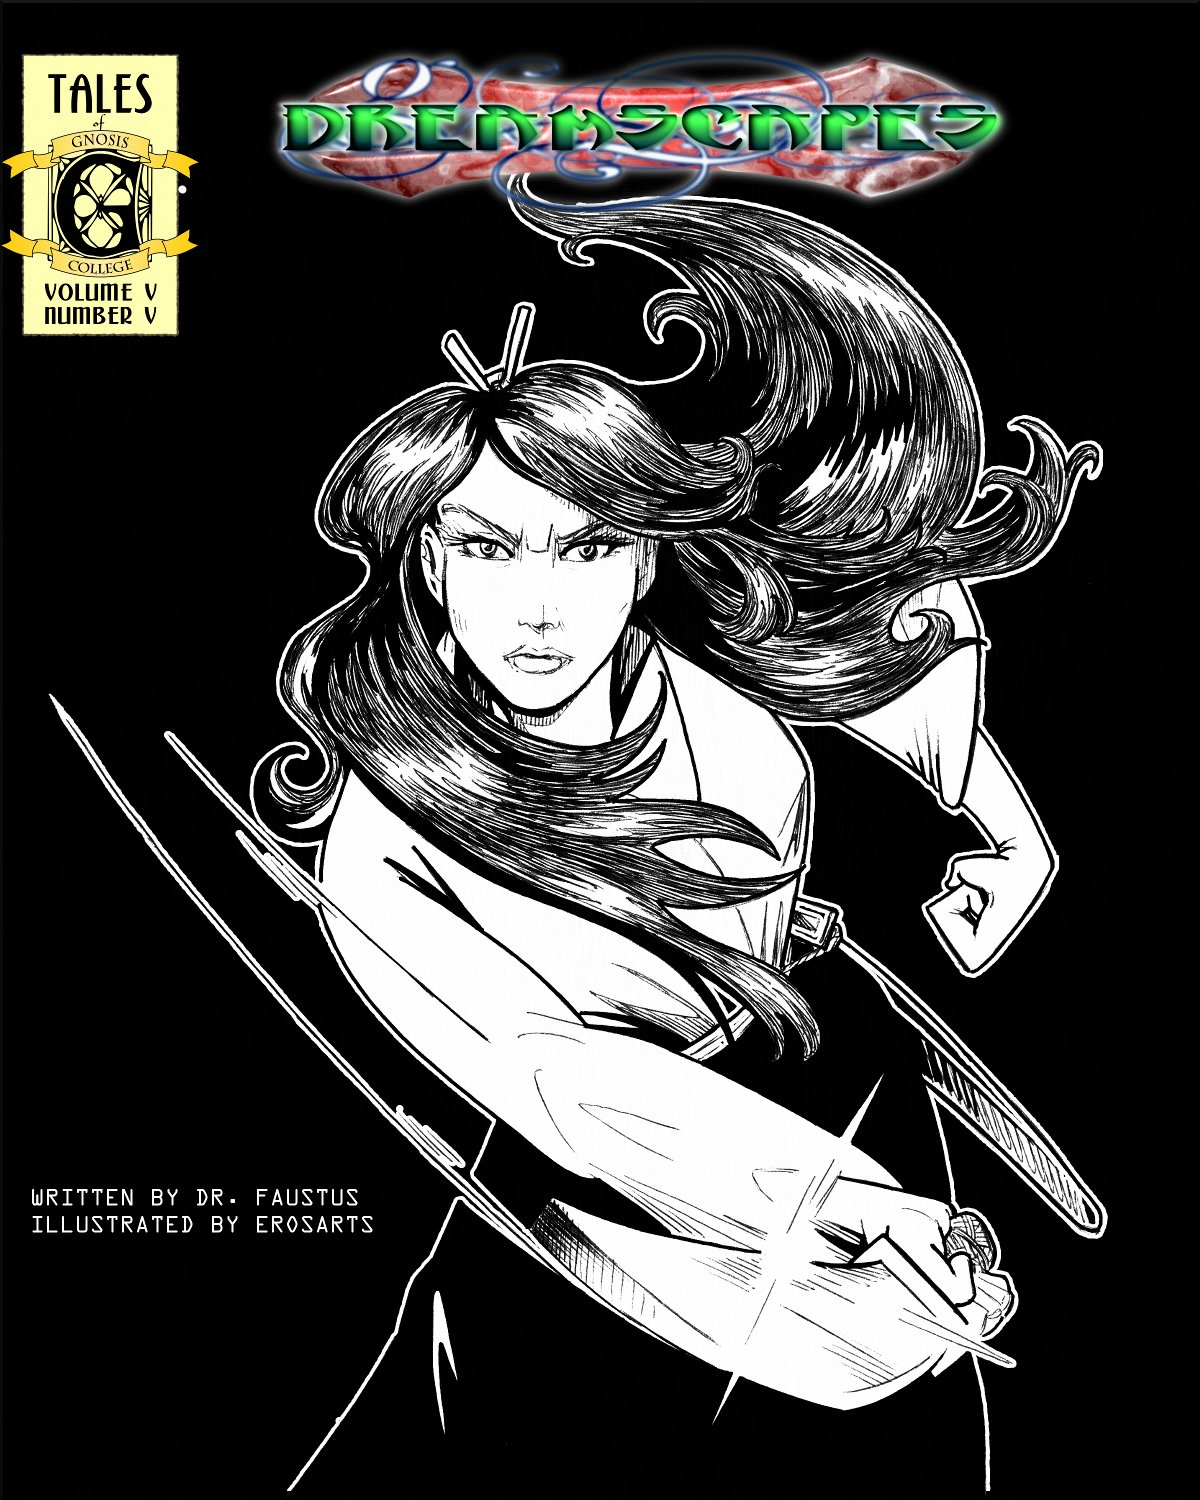 Michiko in black and white as Japanese warrior.